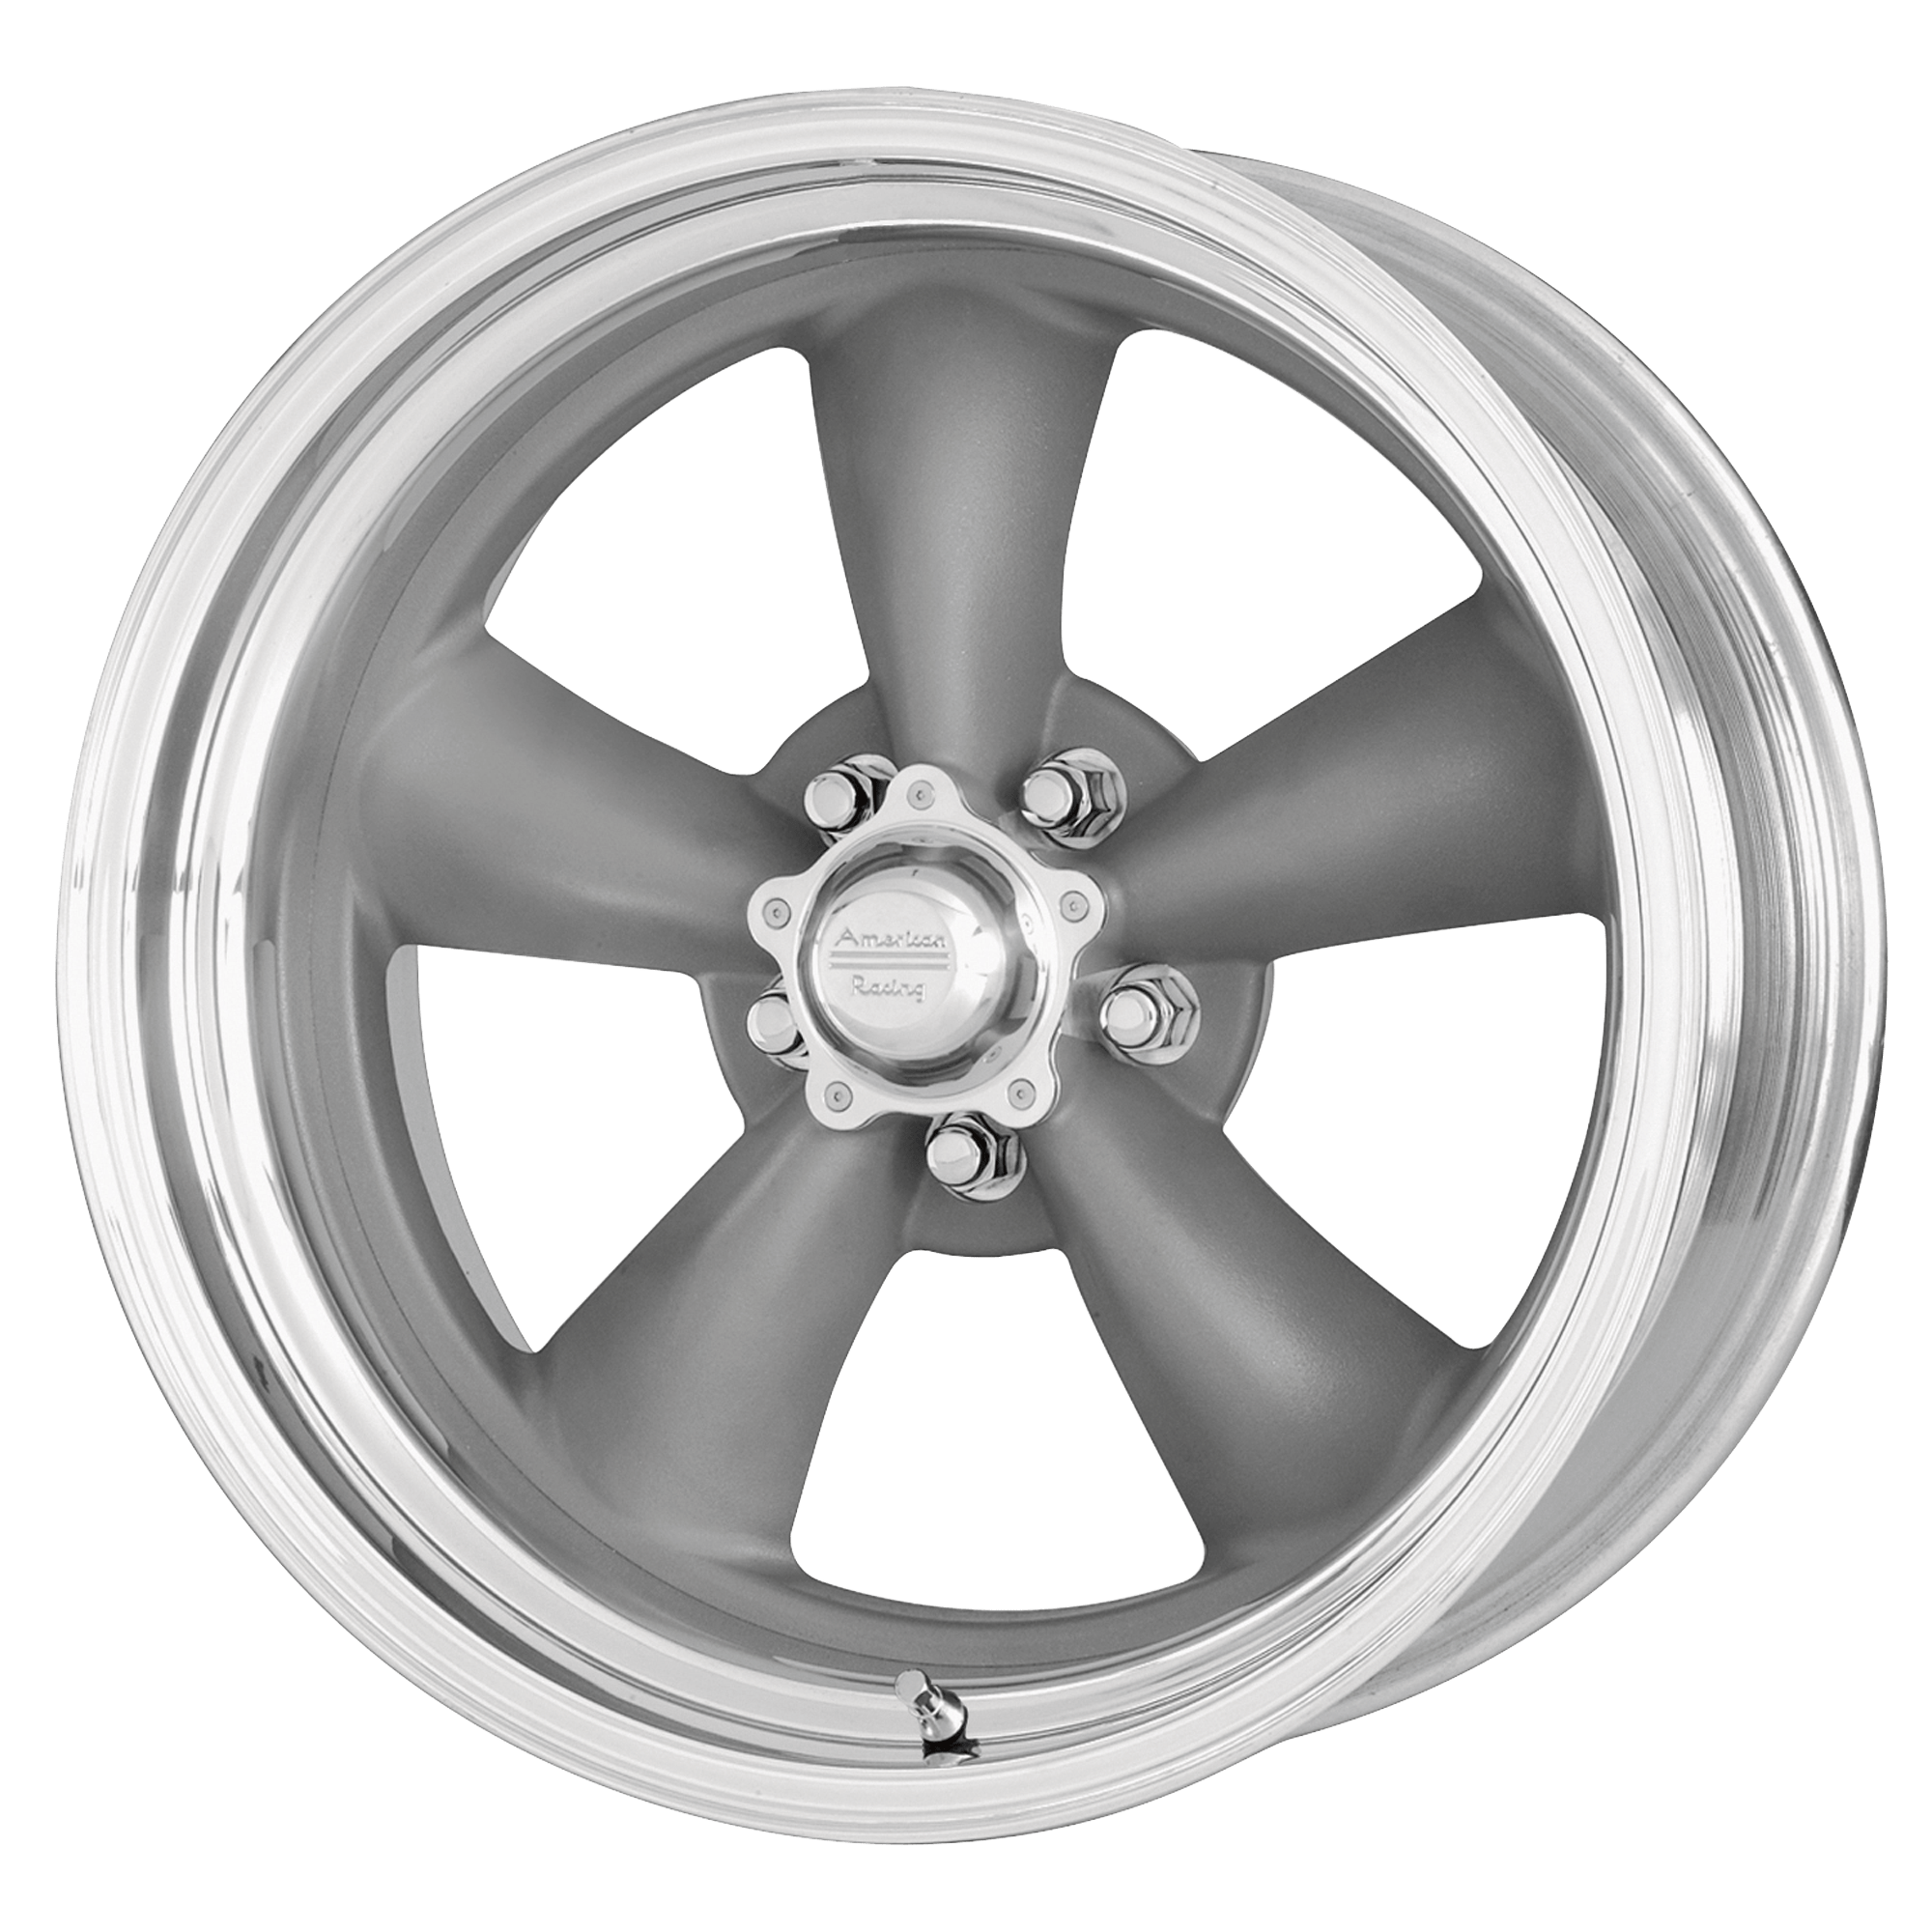 "AMERICAN RACING CLASSIC TORQ THRUST II ONE PIECE in Mag Gray Machined Lip (5×127 17""x7"" et0)"